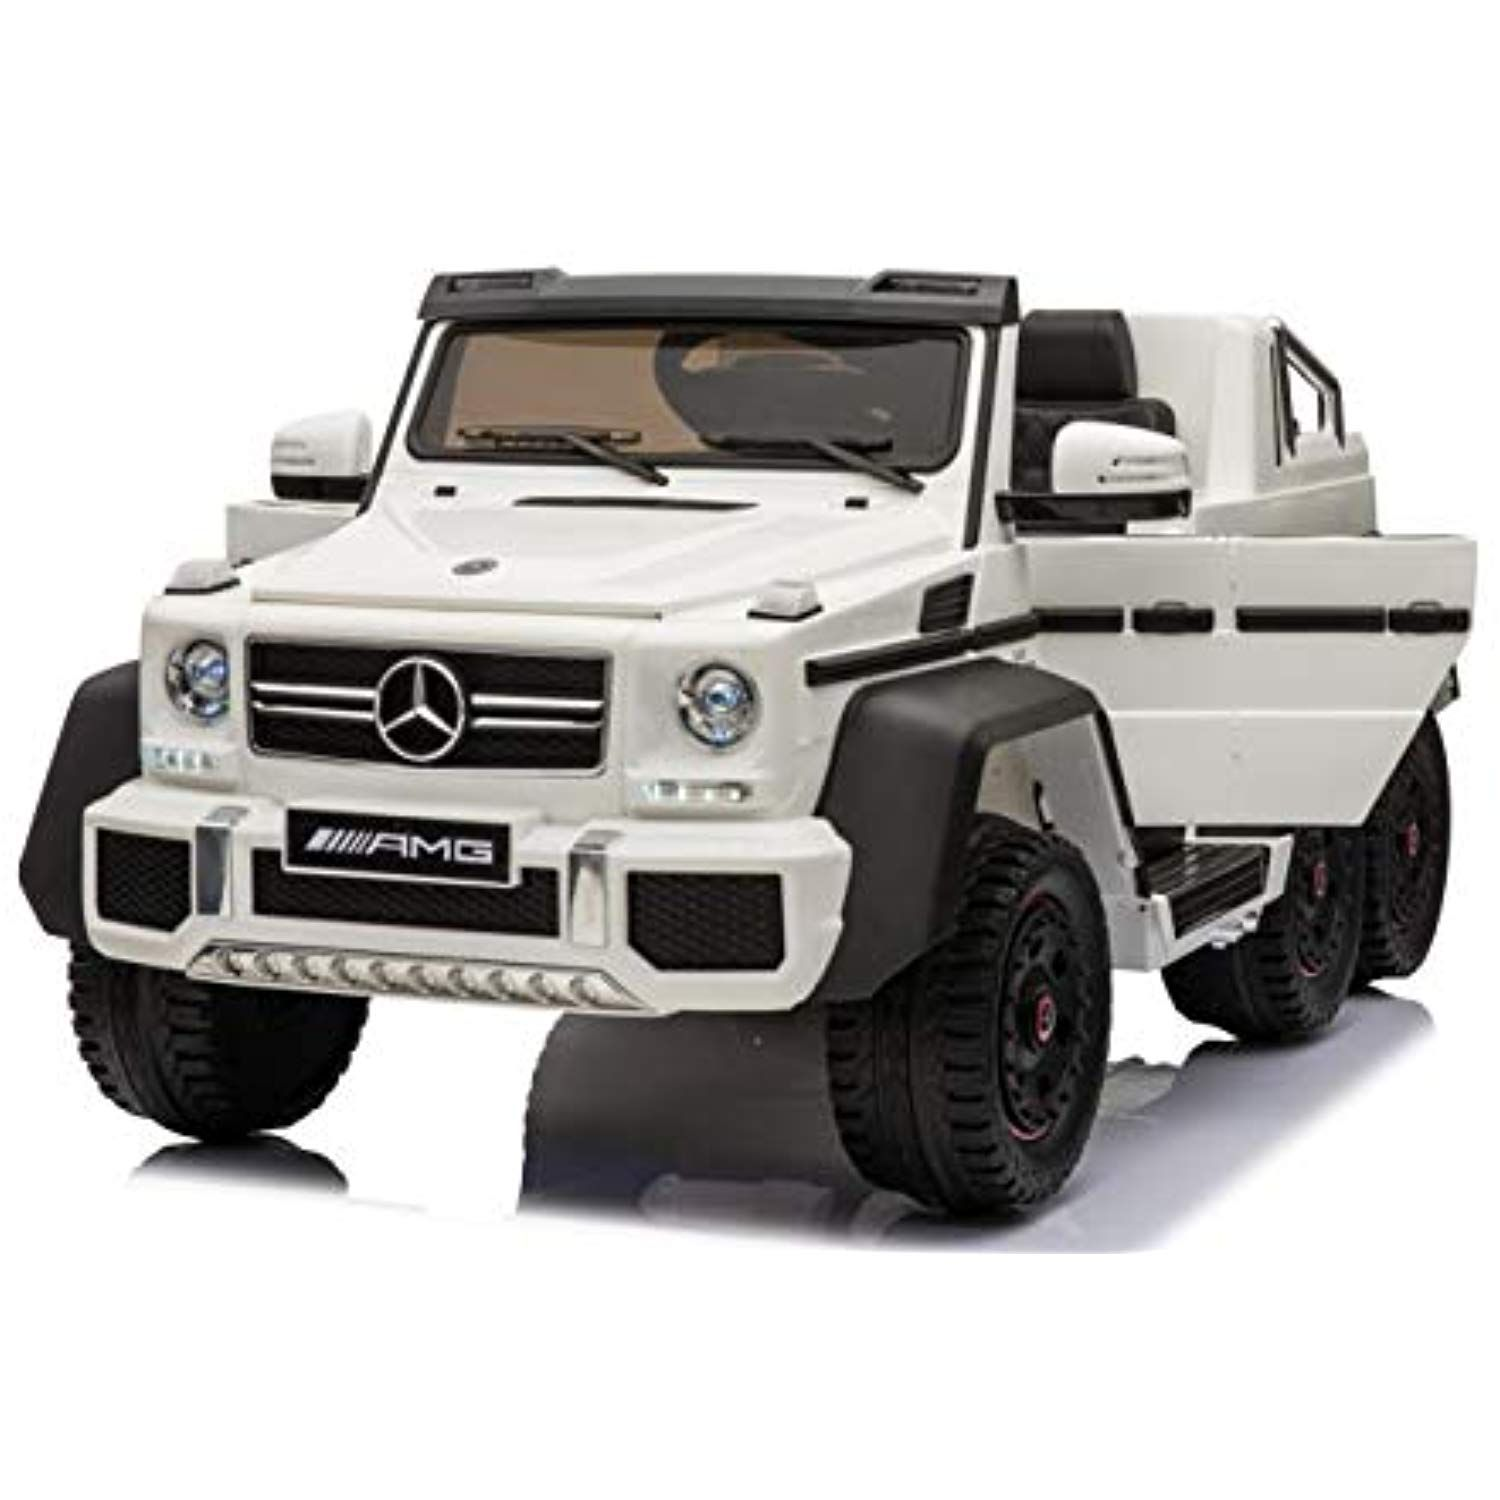 Luxury 4x4 Edition 6 Wheels Mercedes Benz G65 12v 14amp Kids Ride On Car Battery Powered Toy With Doors Music Lights Rubber Whee Mercedes Mercedes Benz Benz